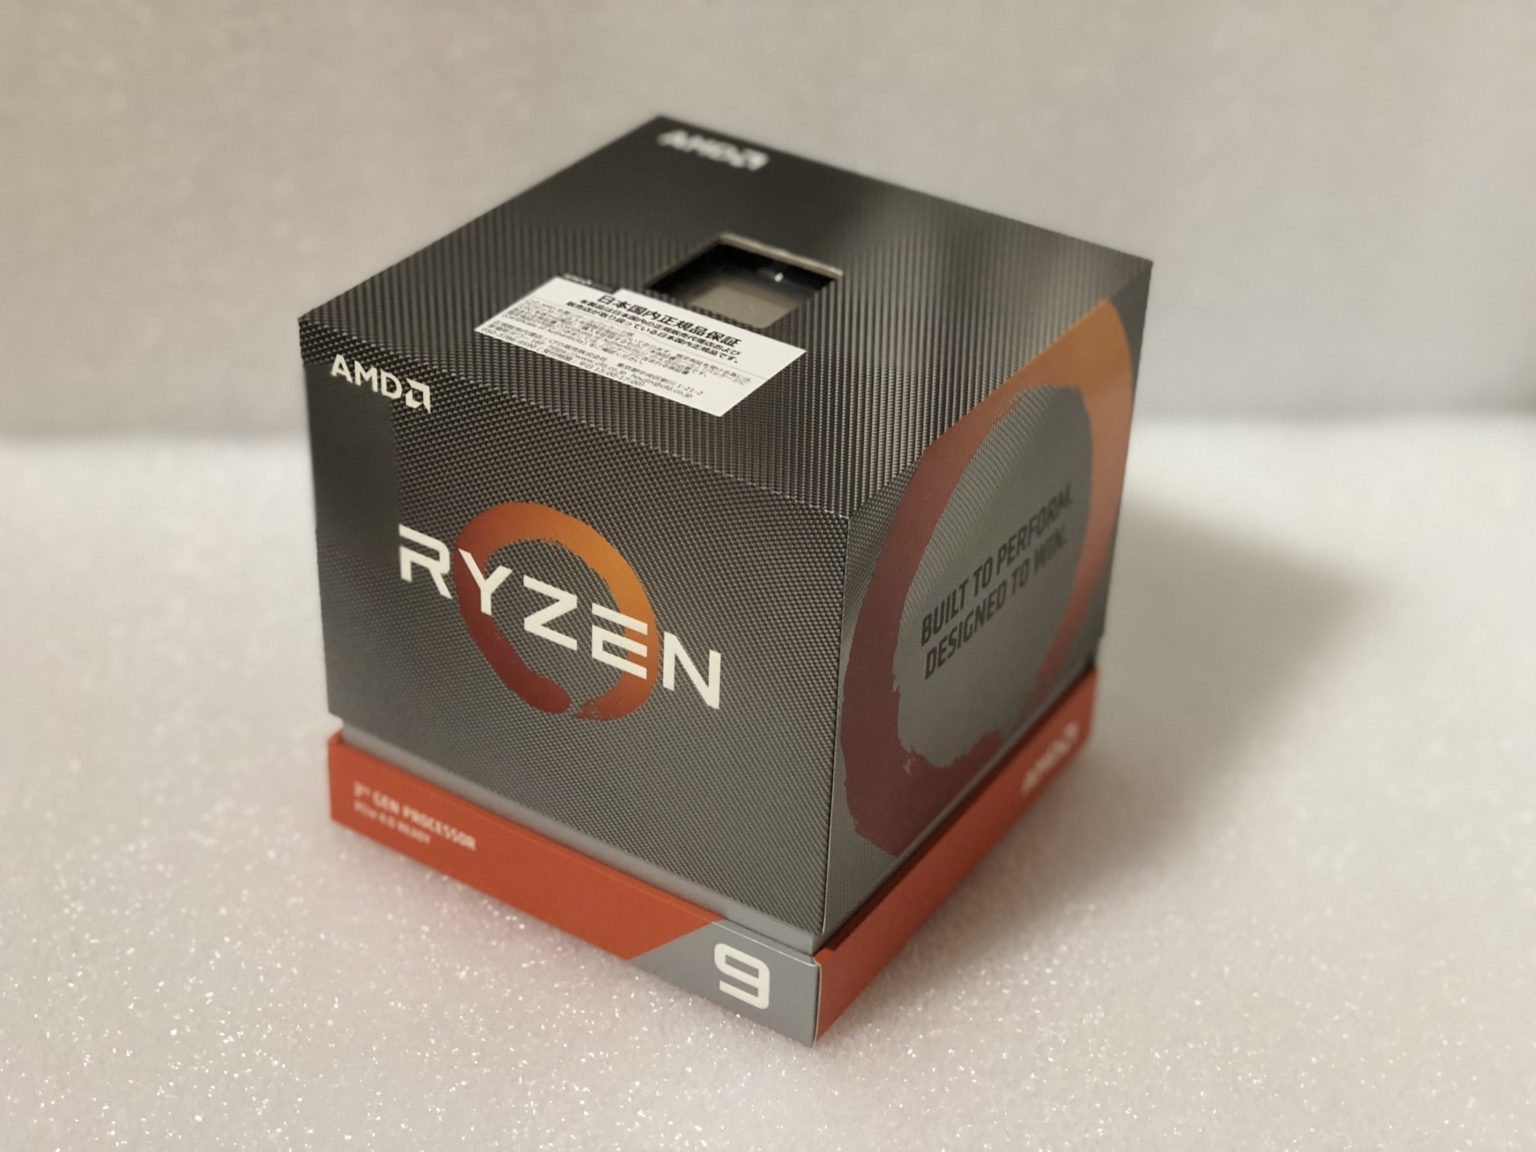 AMD Ryzen 9 3900X 12core 24thread CPU